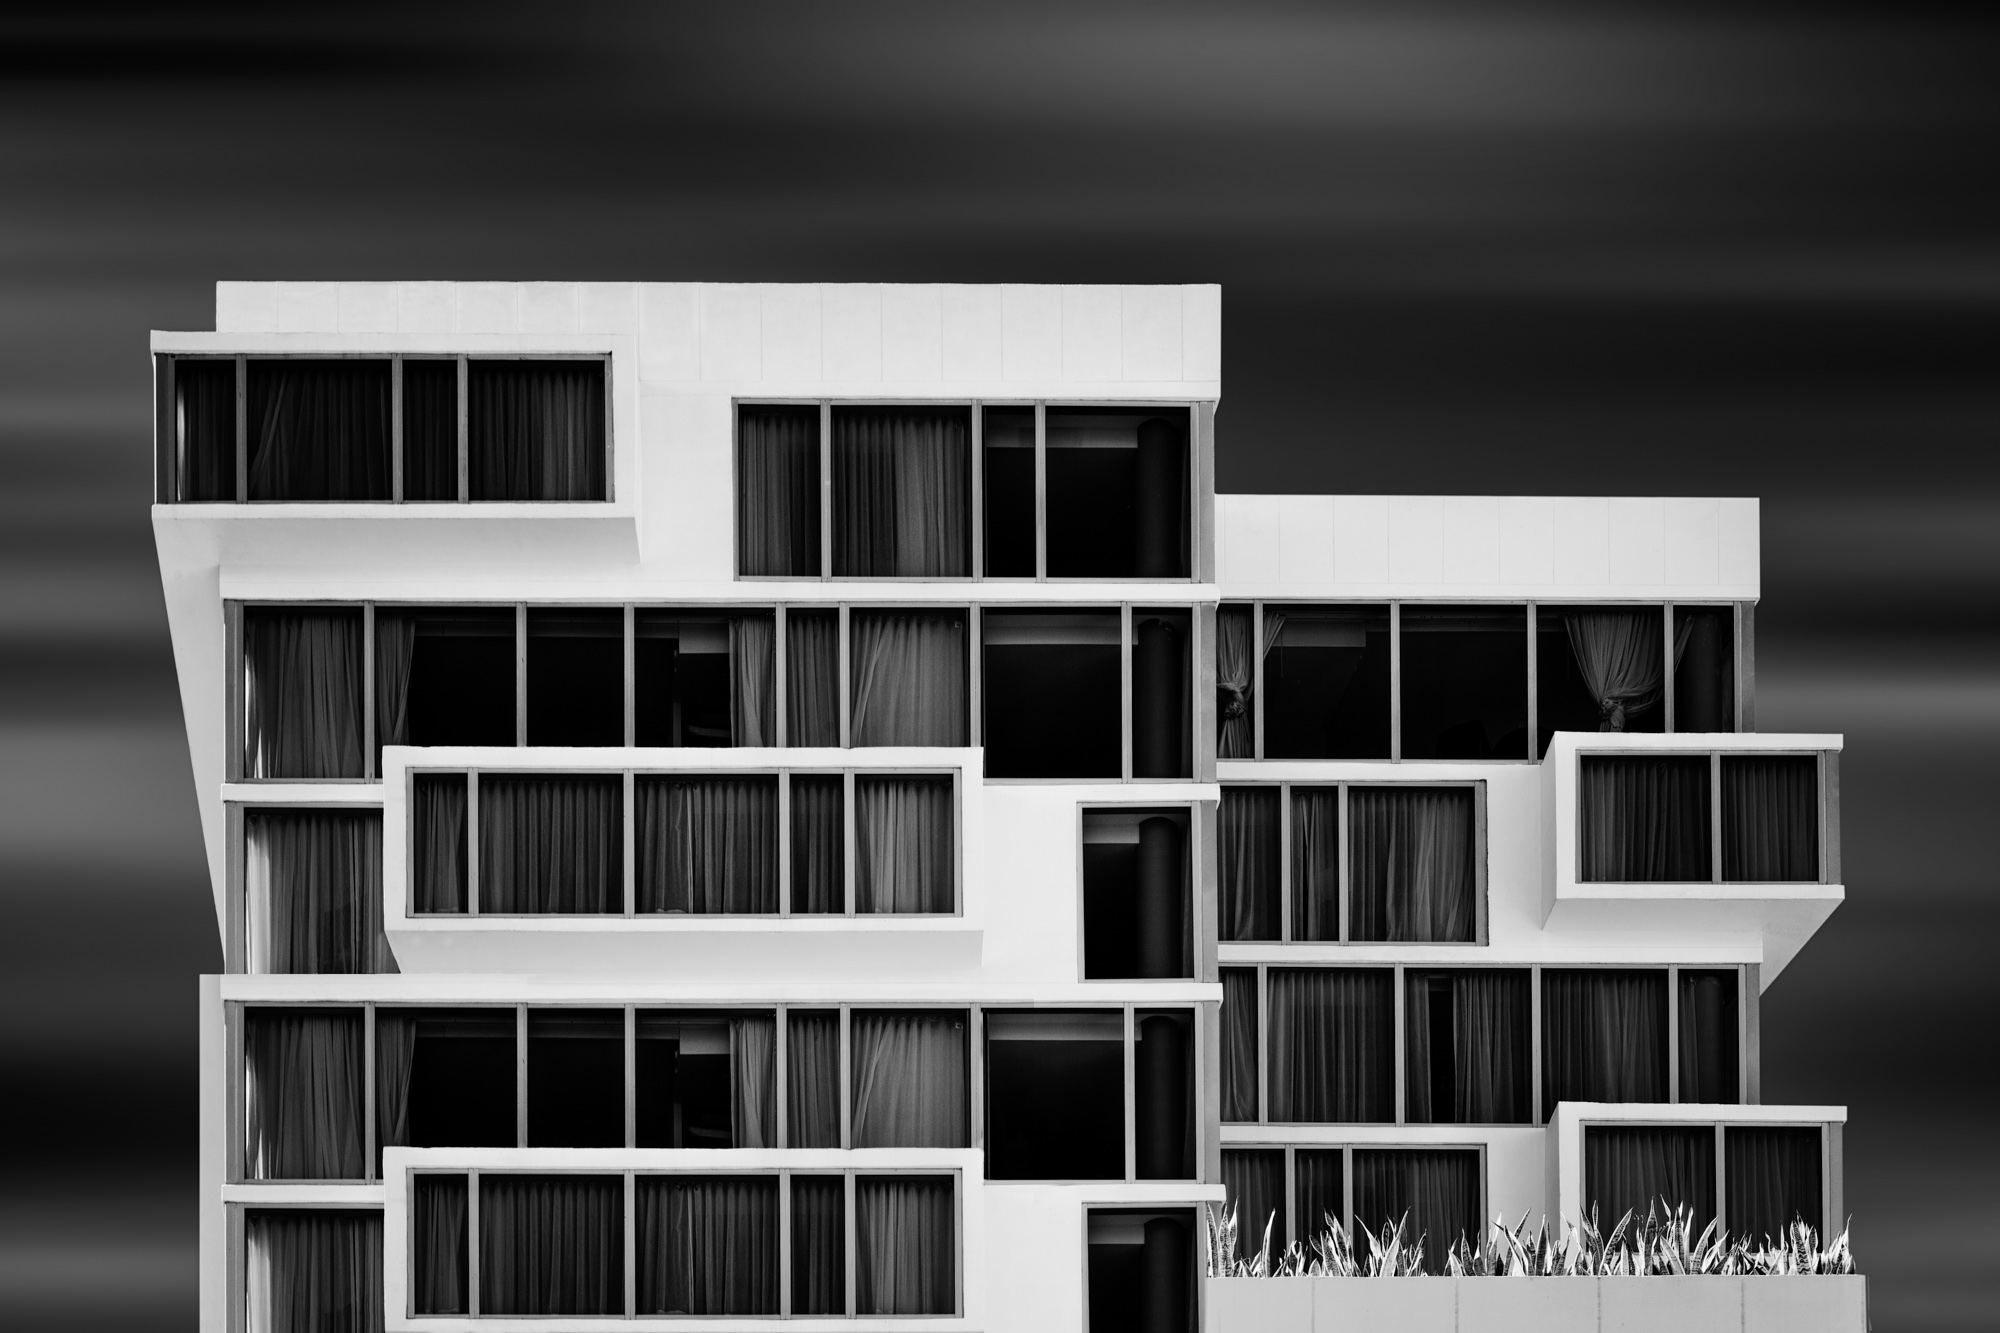 antonyz long exposure architecture photograph of a modern apartment building